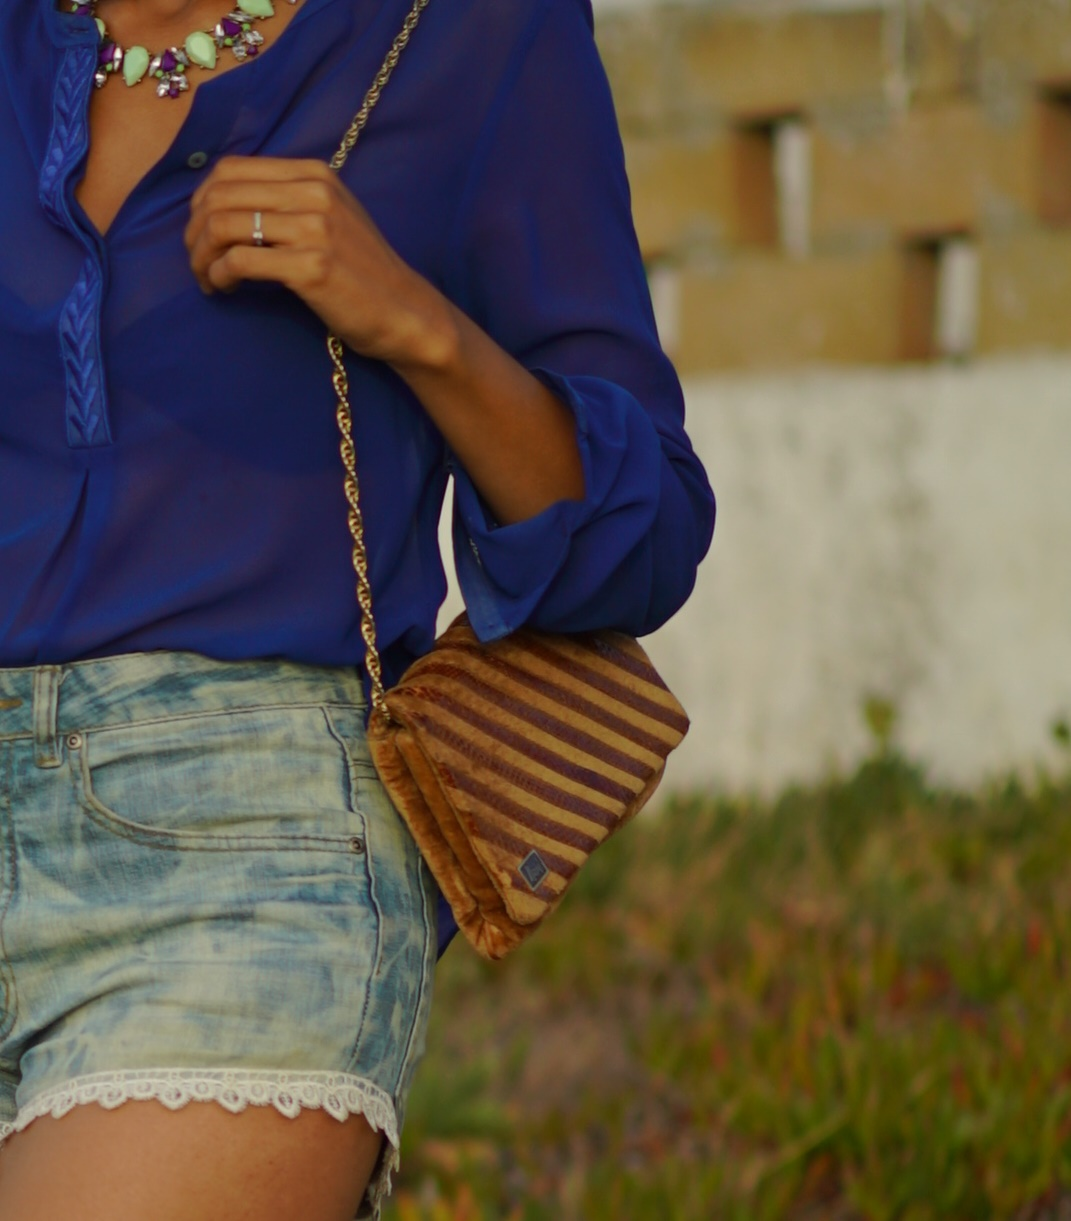 Denim & lace shorts party outfit 10